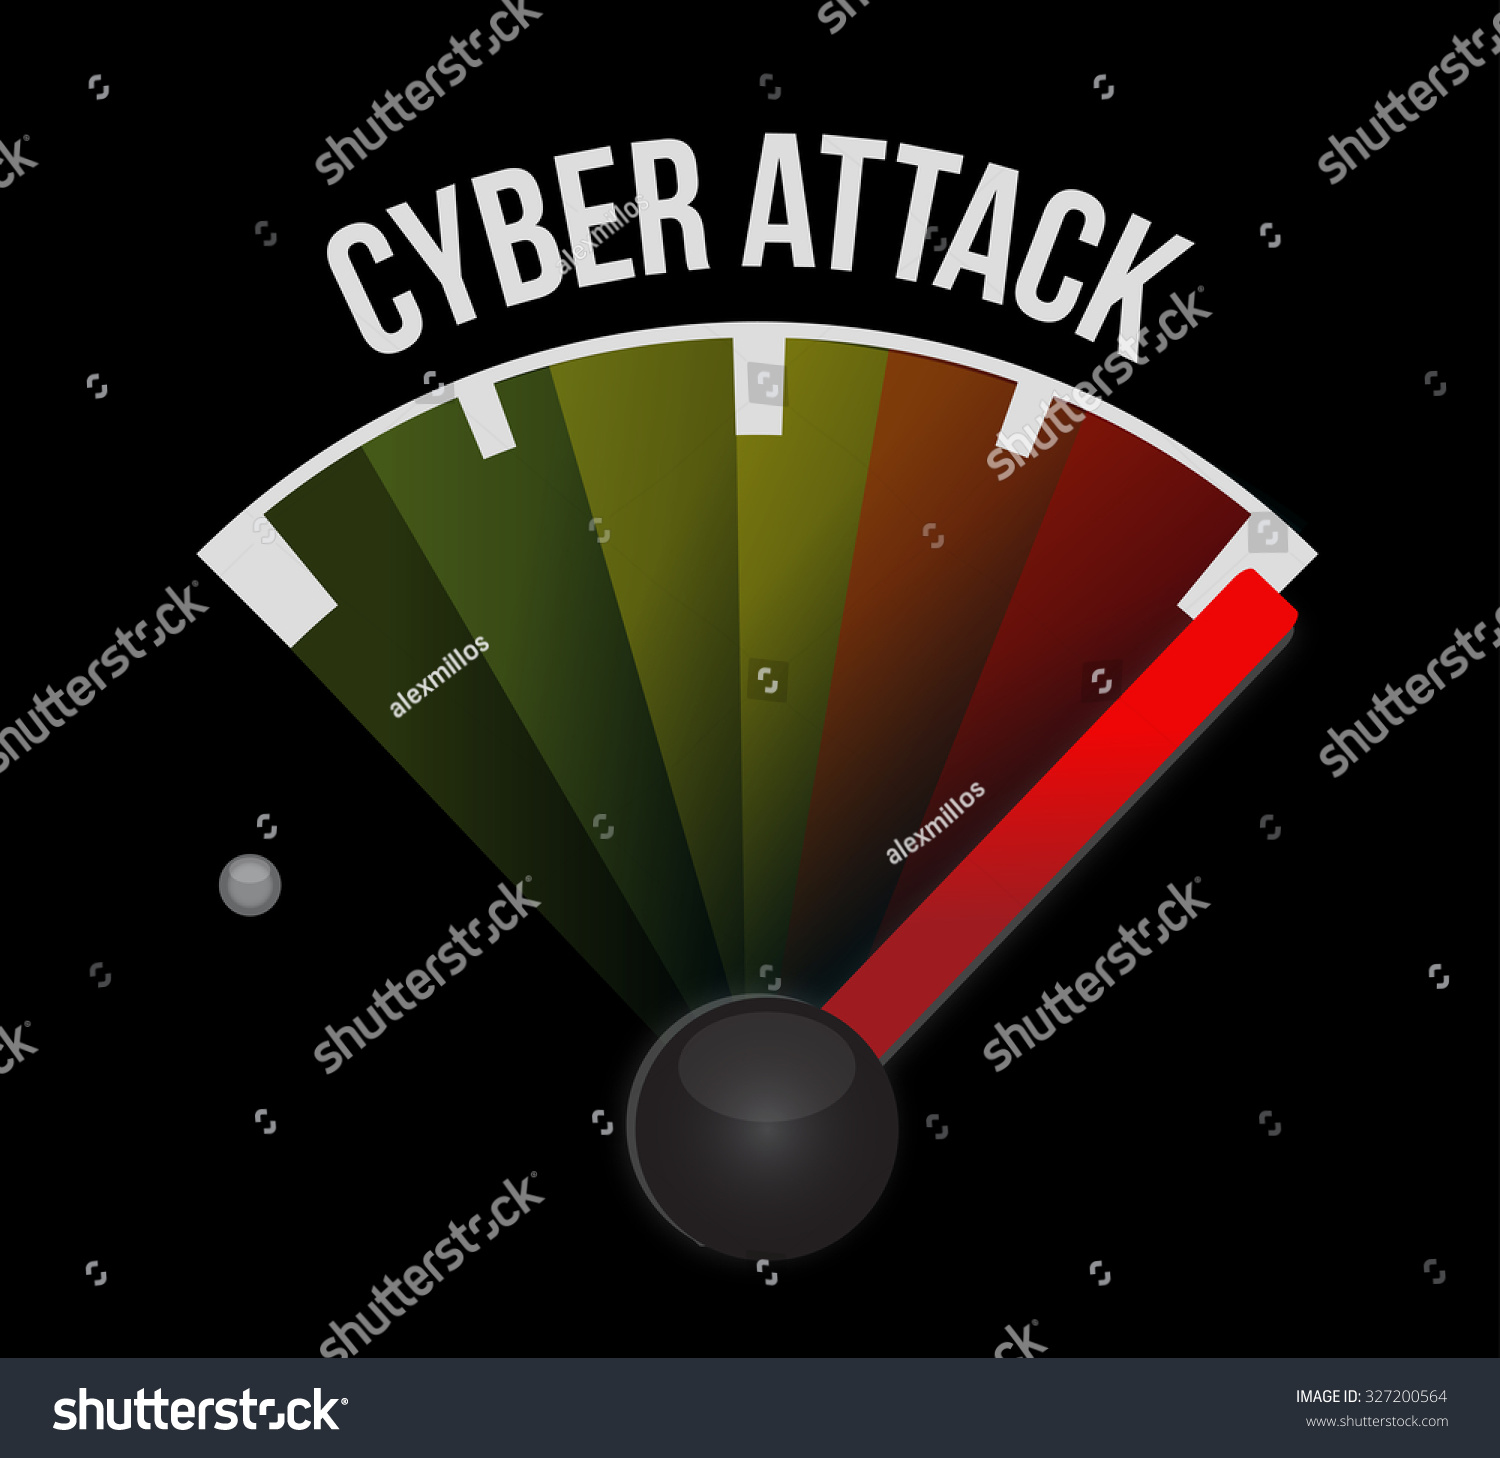 Cyber attack meter sign concept illustration stock for Design attack